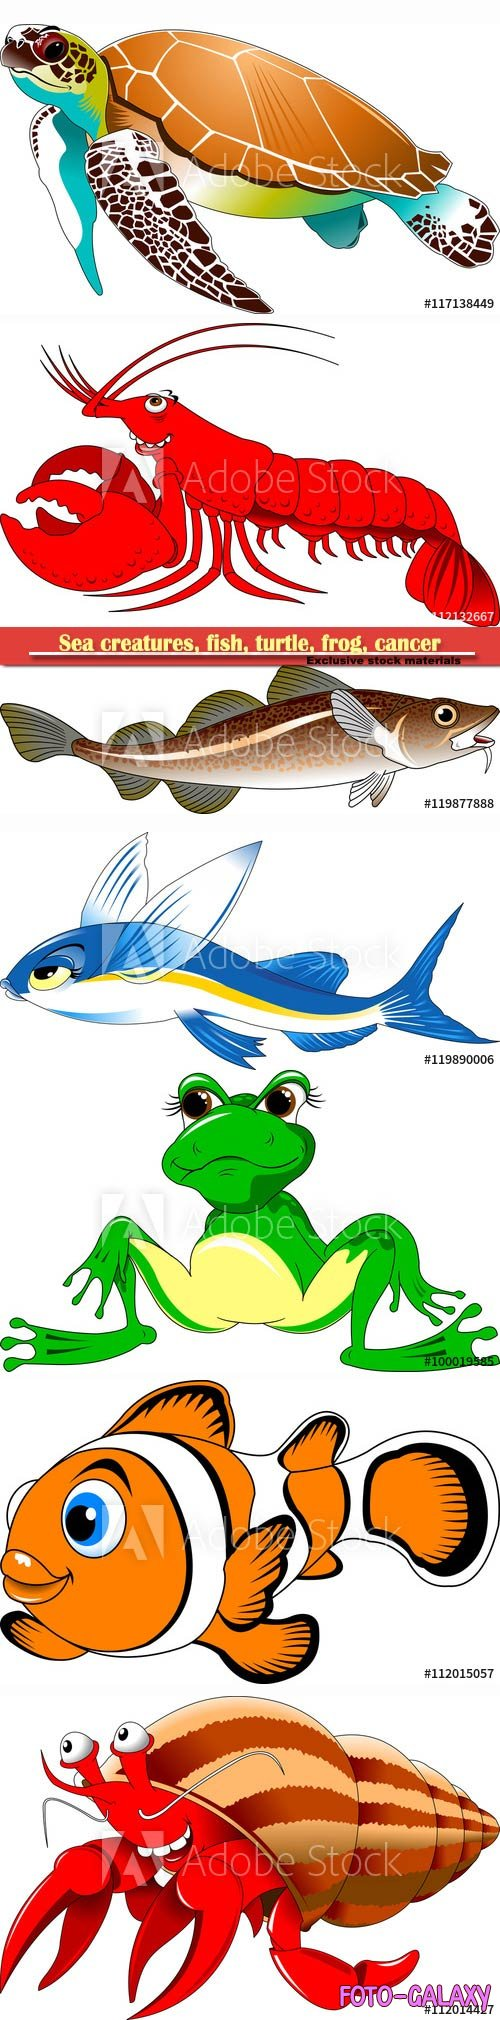 Sea creatures, fish, turtle, frog, cancer